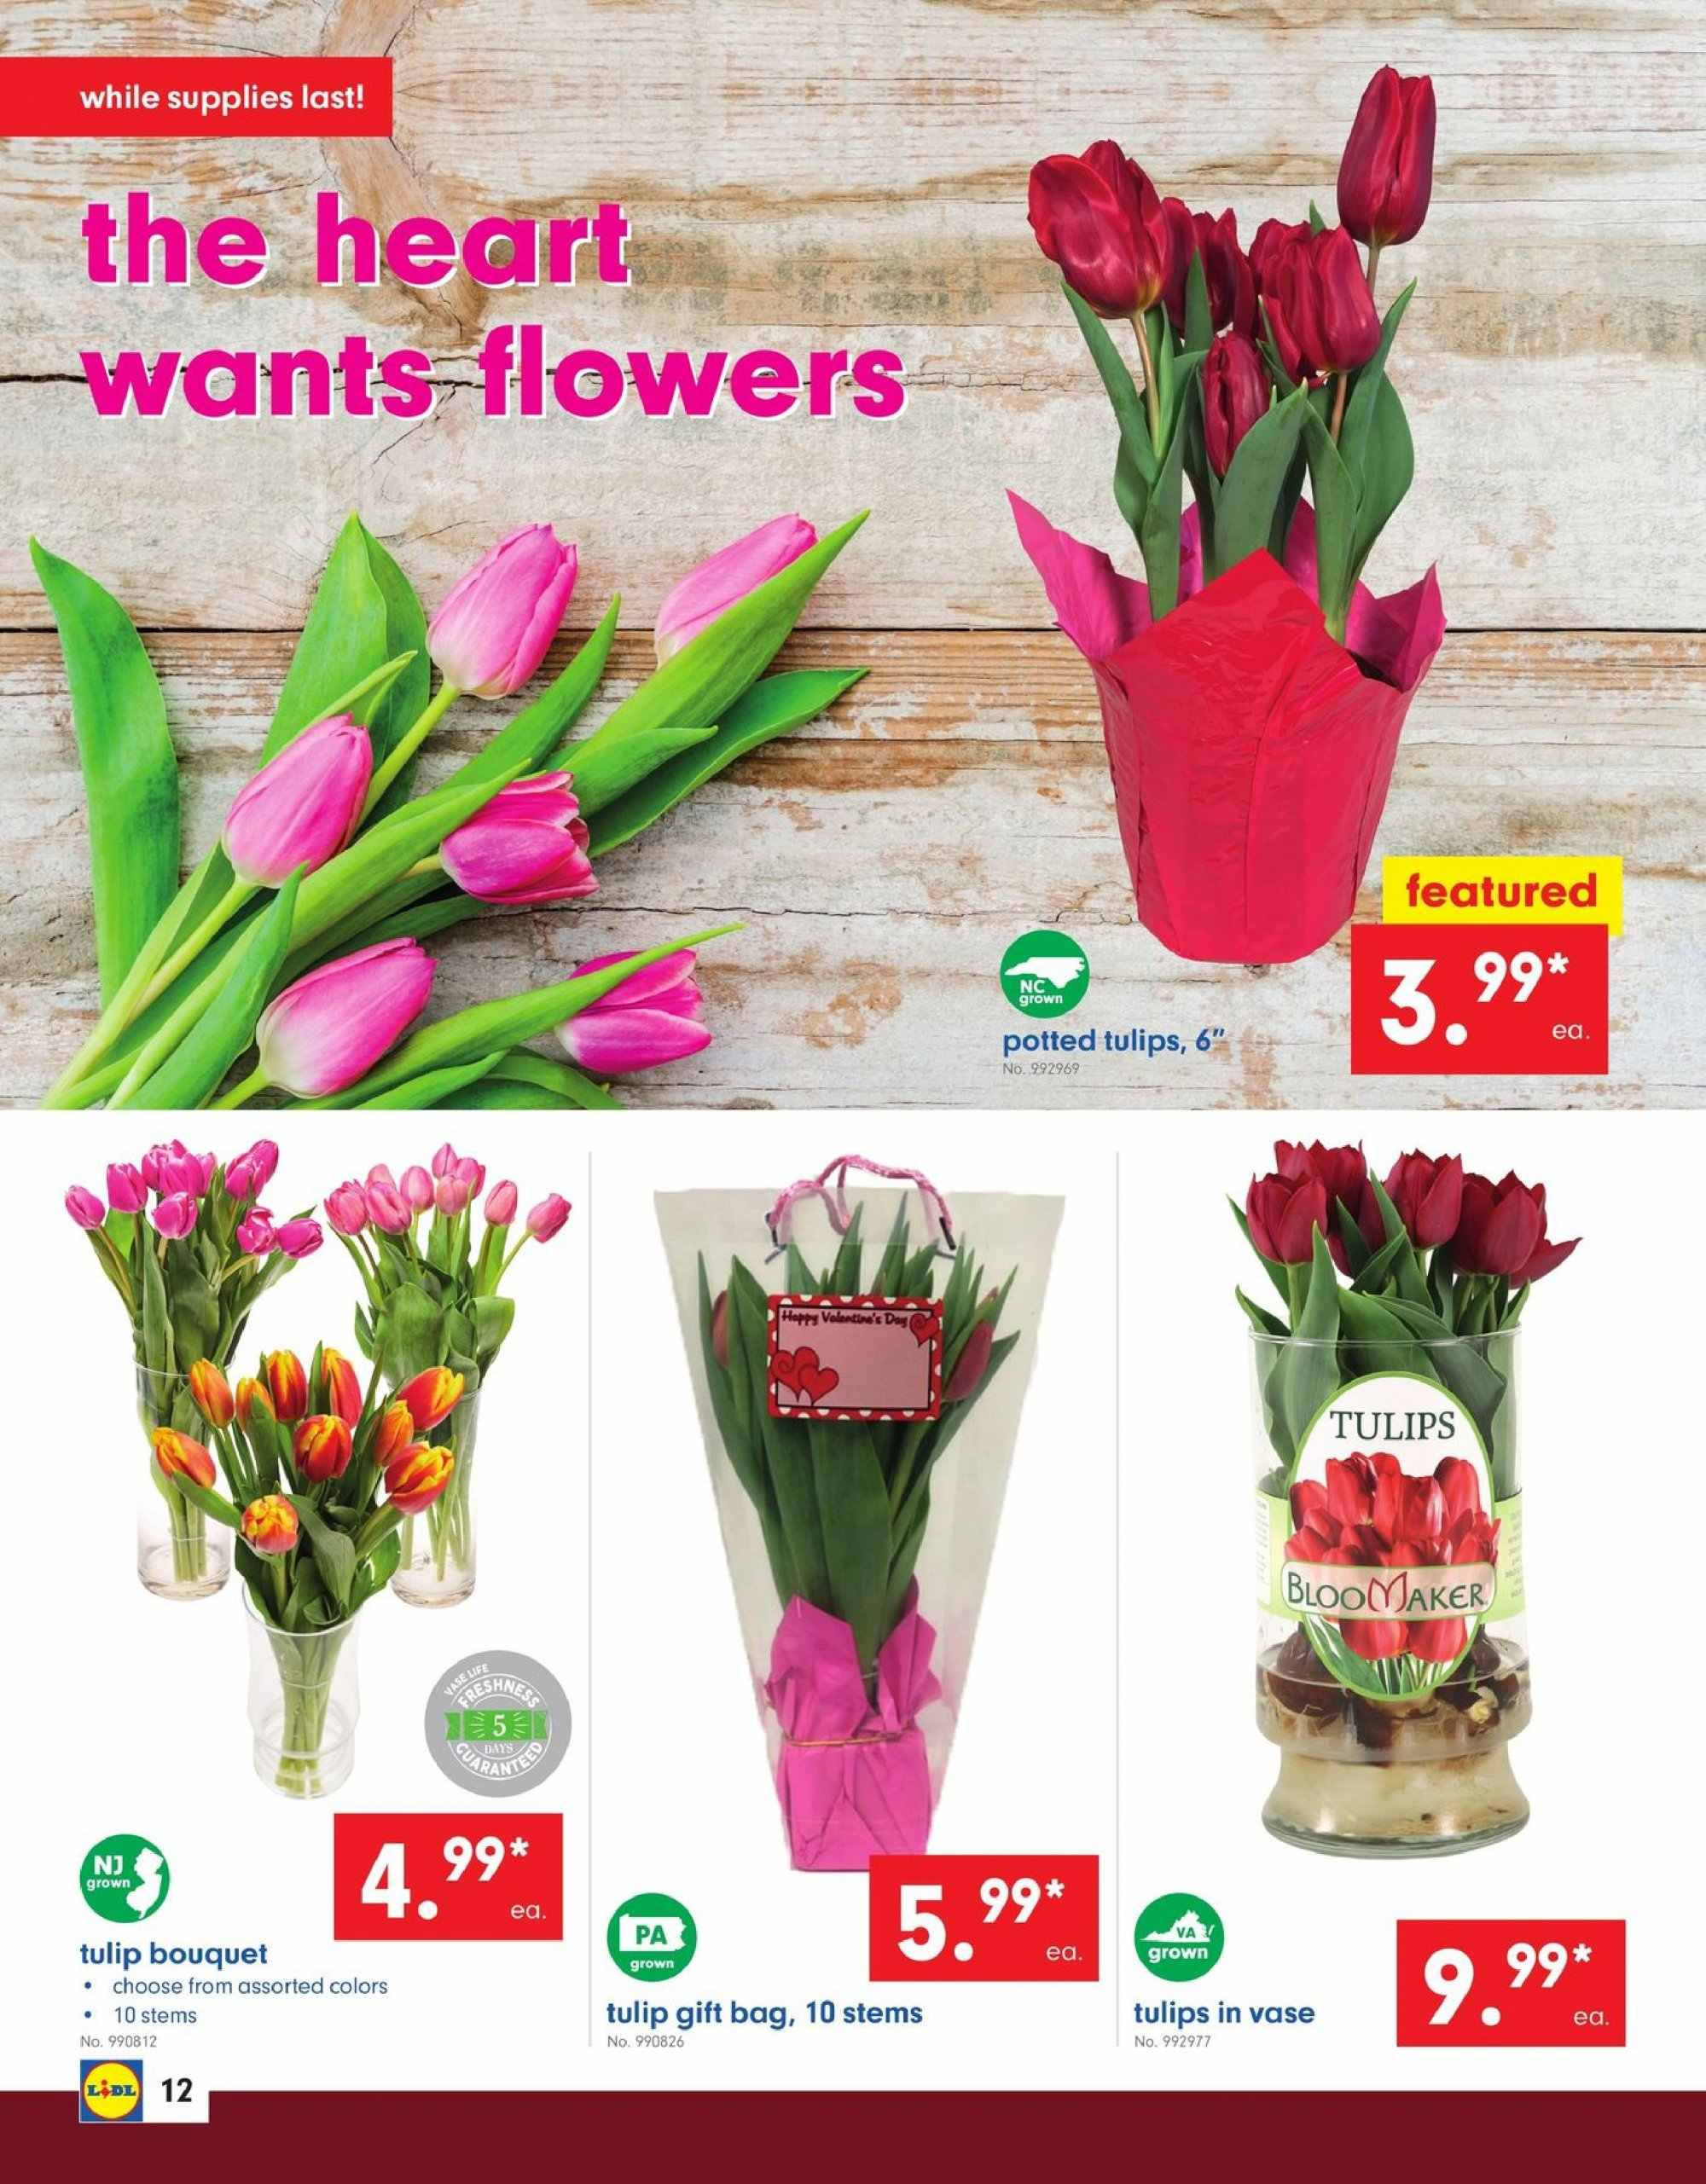 Lidl Flyer - 02.06.2019 - 02.12.2019 - Sales products - bag, gift bag. Page 12.